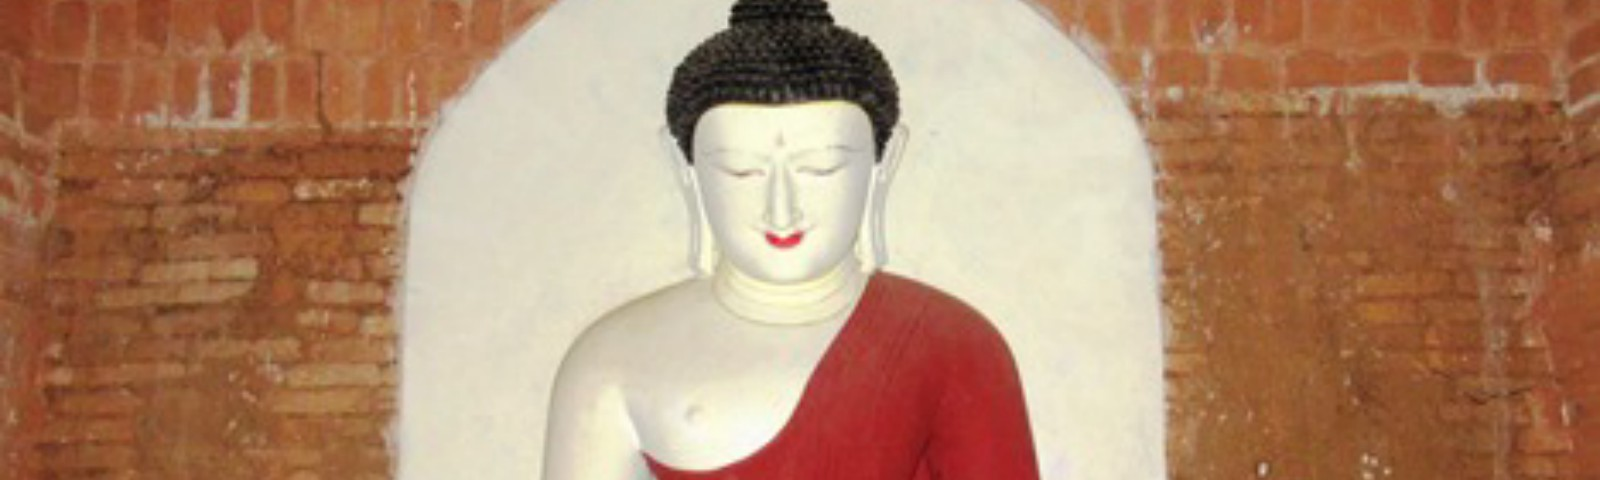 a seated Buddha with red robes